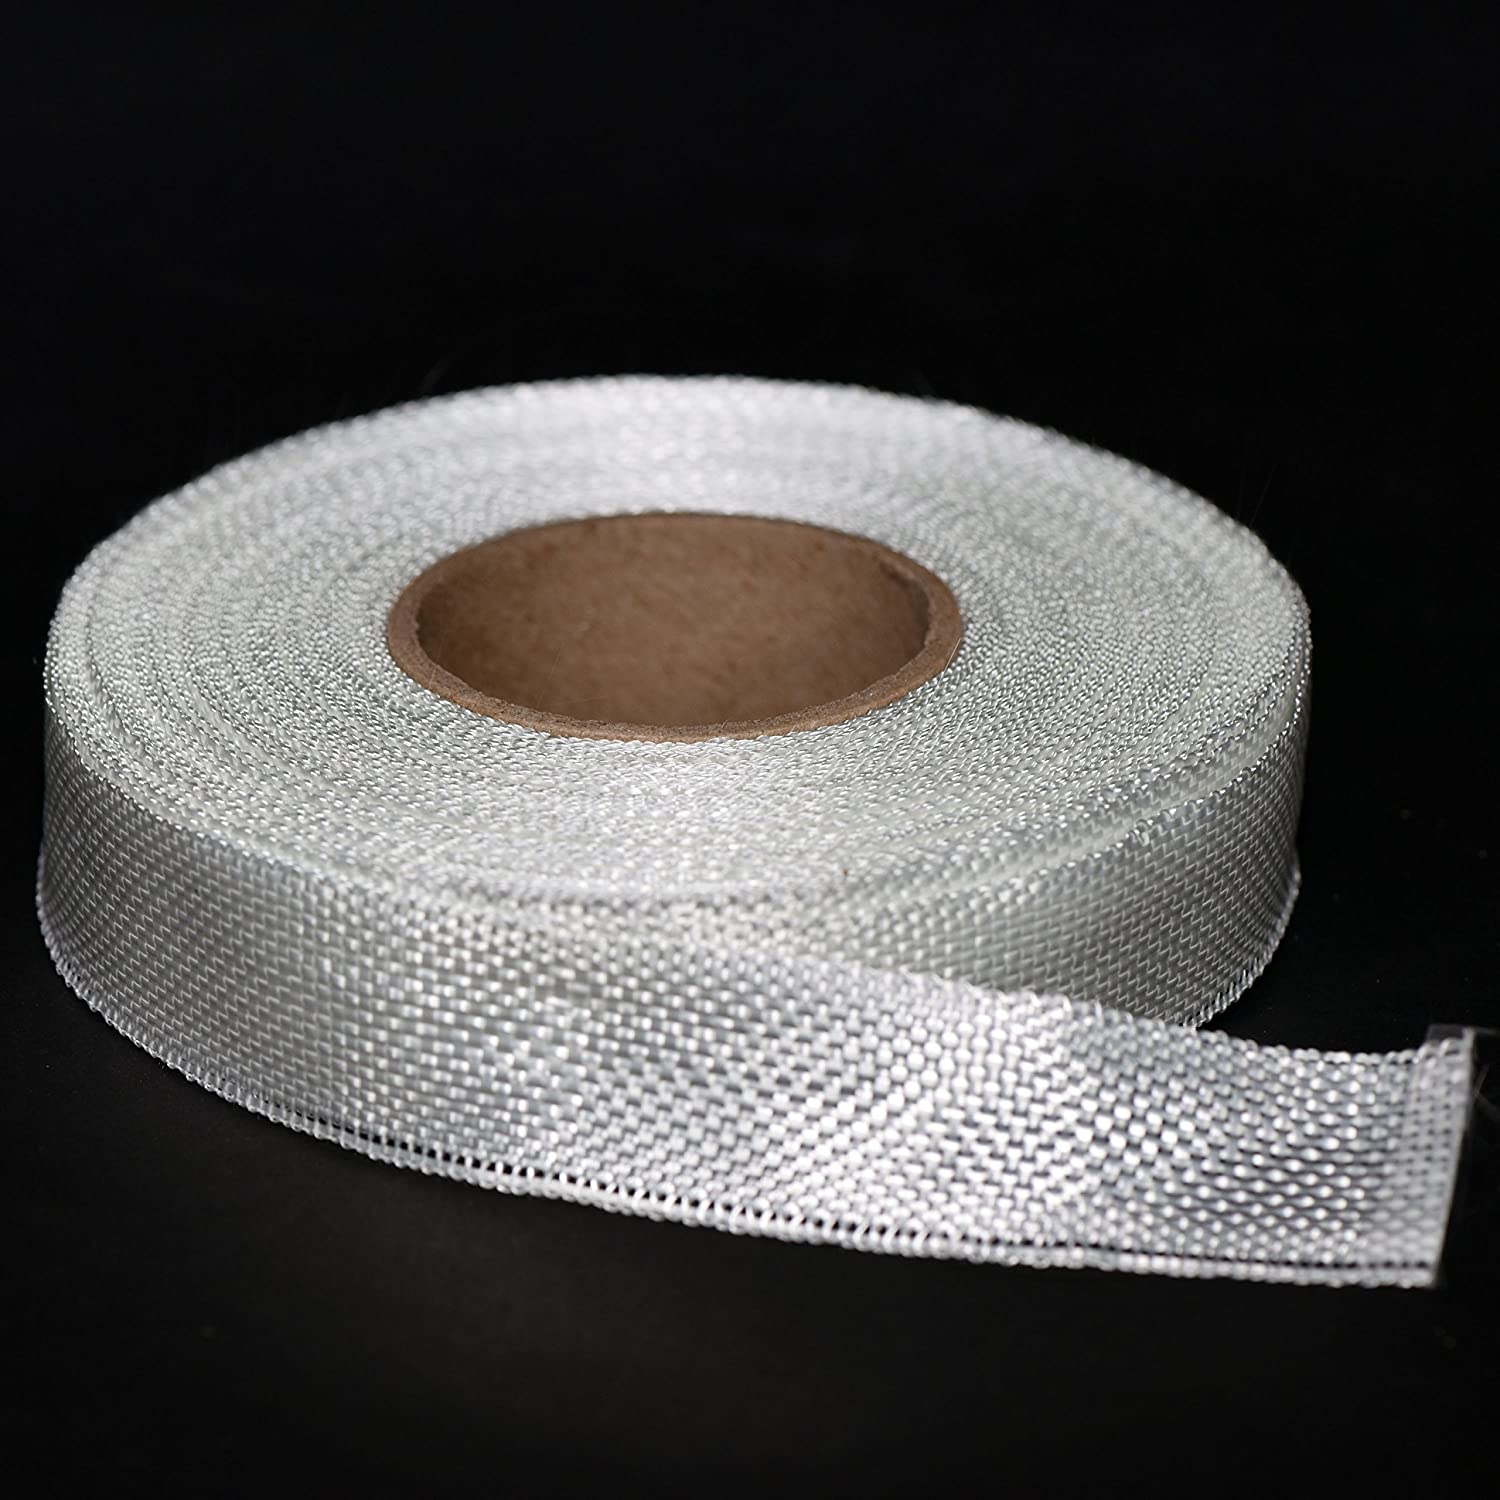 Fiberglass Cloth Tape 6oz 1' Wide by 50 Yards (2.54 cm x 4572 cm) Rayplex Limited